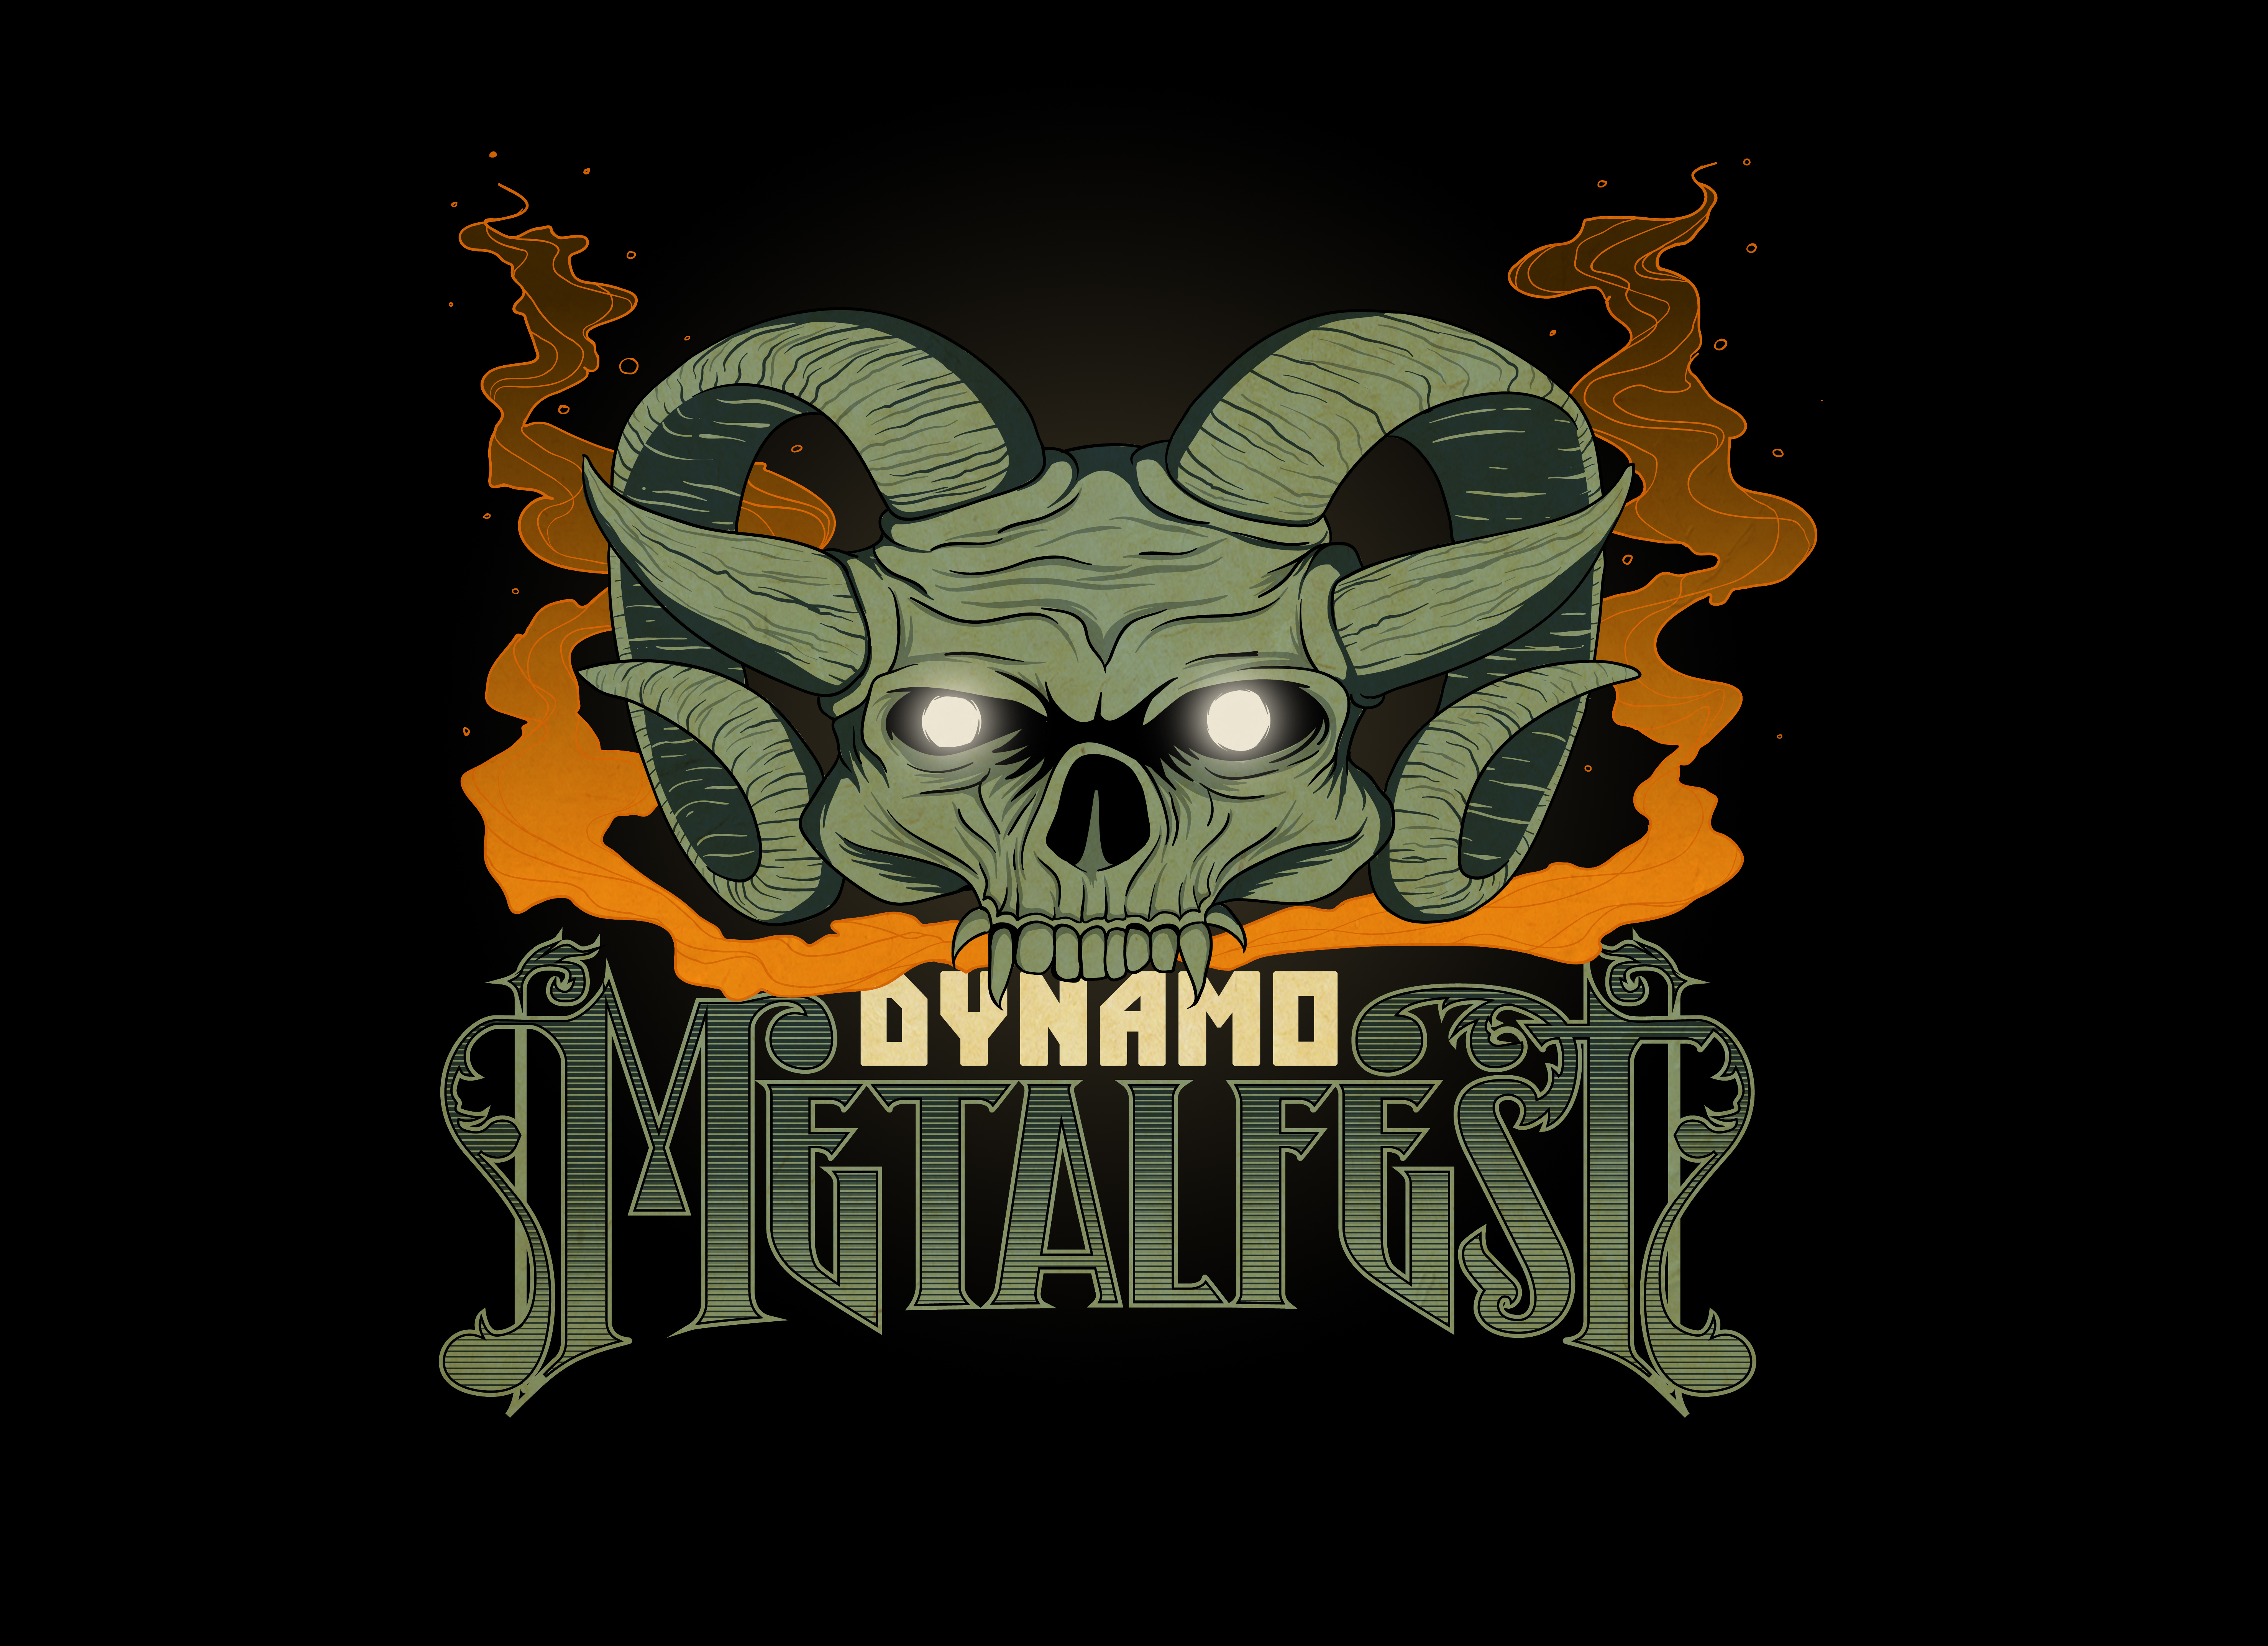 DYNAMO Metal Fest announced